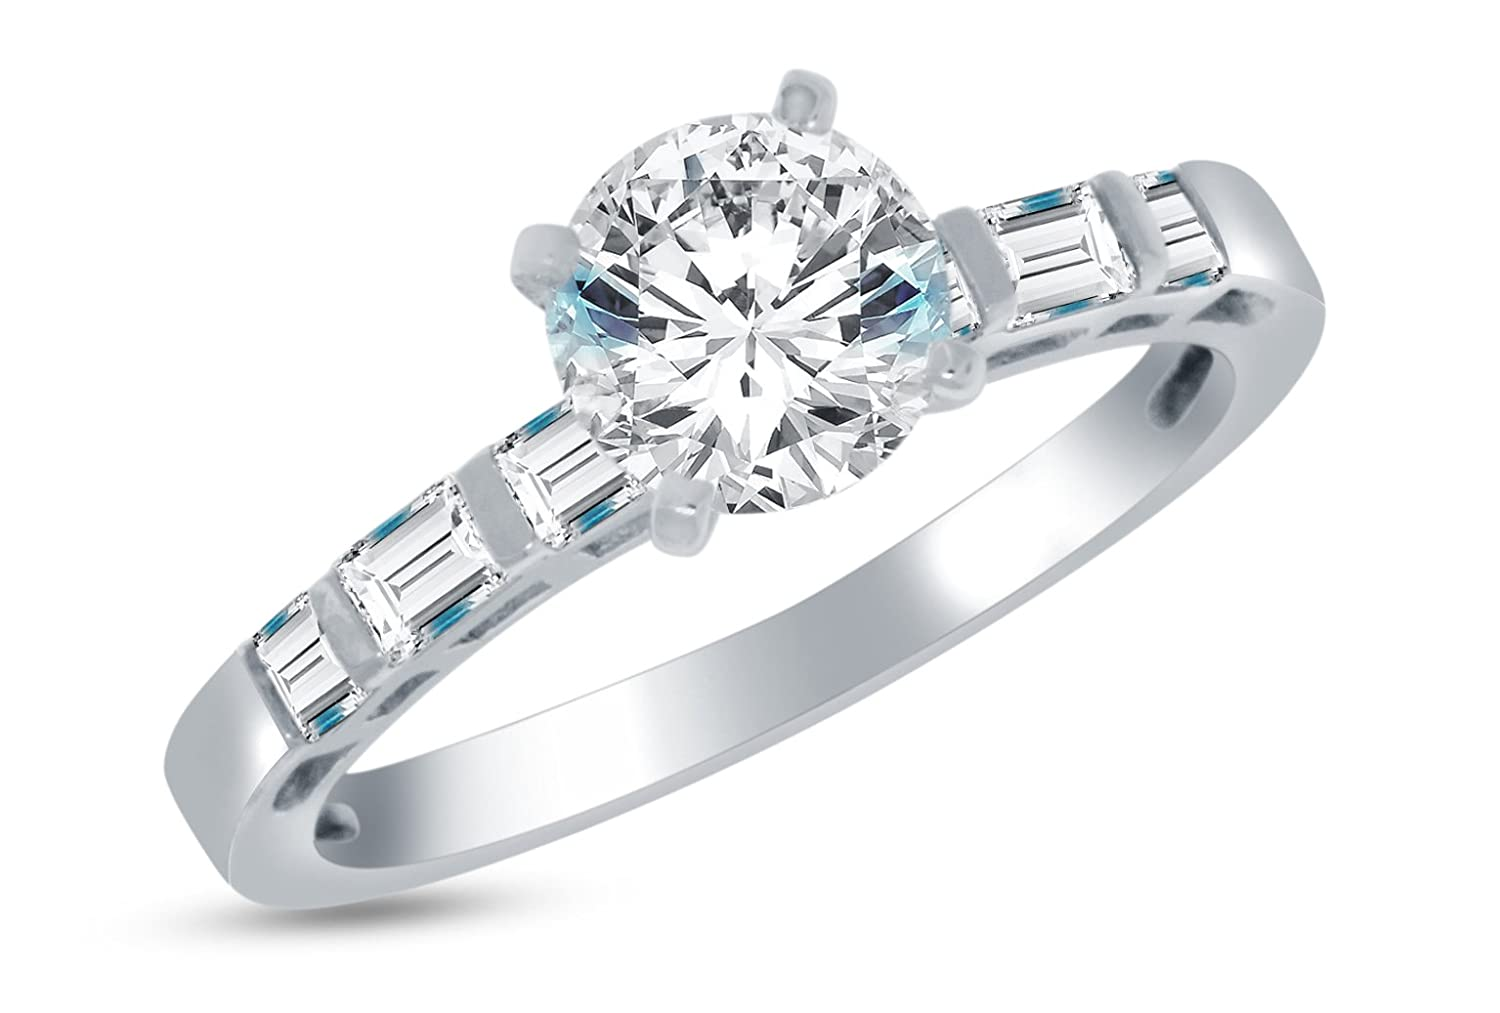 Solid 14k White Gold Highest Quality CZ Cubic Zirconia Bridal Engagement Ring w/Matching Wedding Band Two Ring Set - Round Brilliant Cut Solitaire with Princess & Baguette Side Stones (1.75cttw., 1.0ct. Center) Sonia Jewels SCRGN-717&719